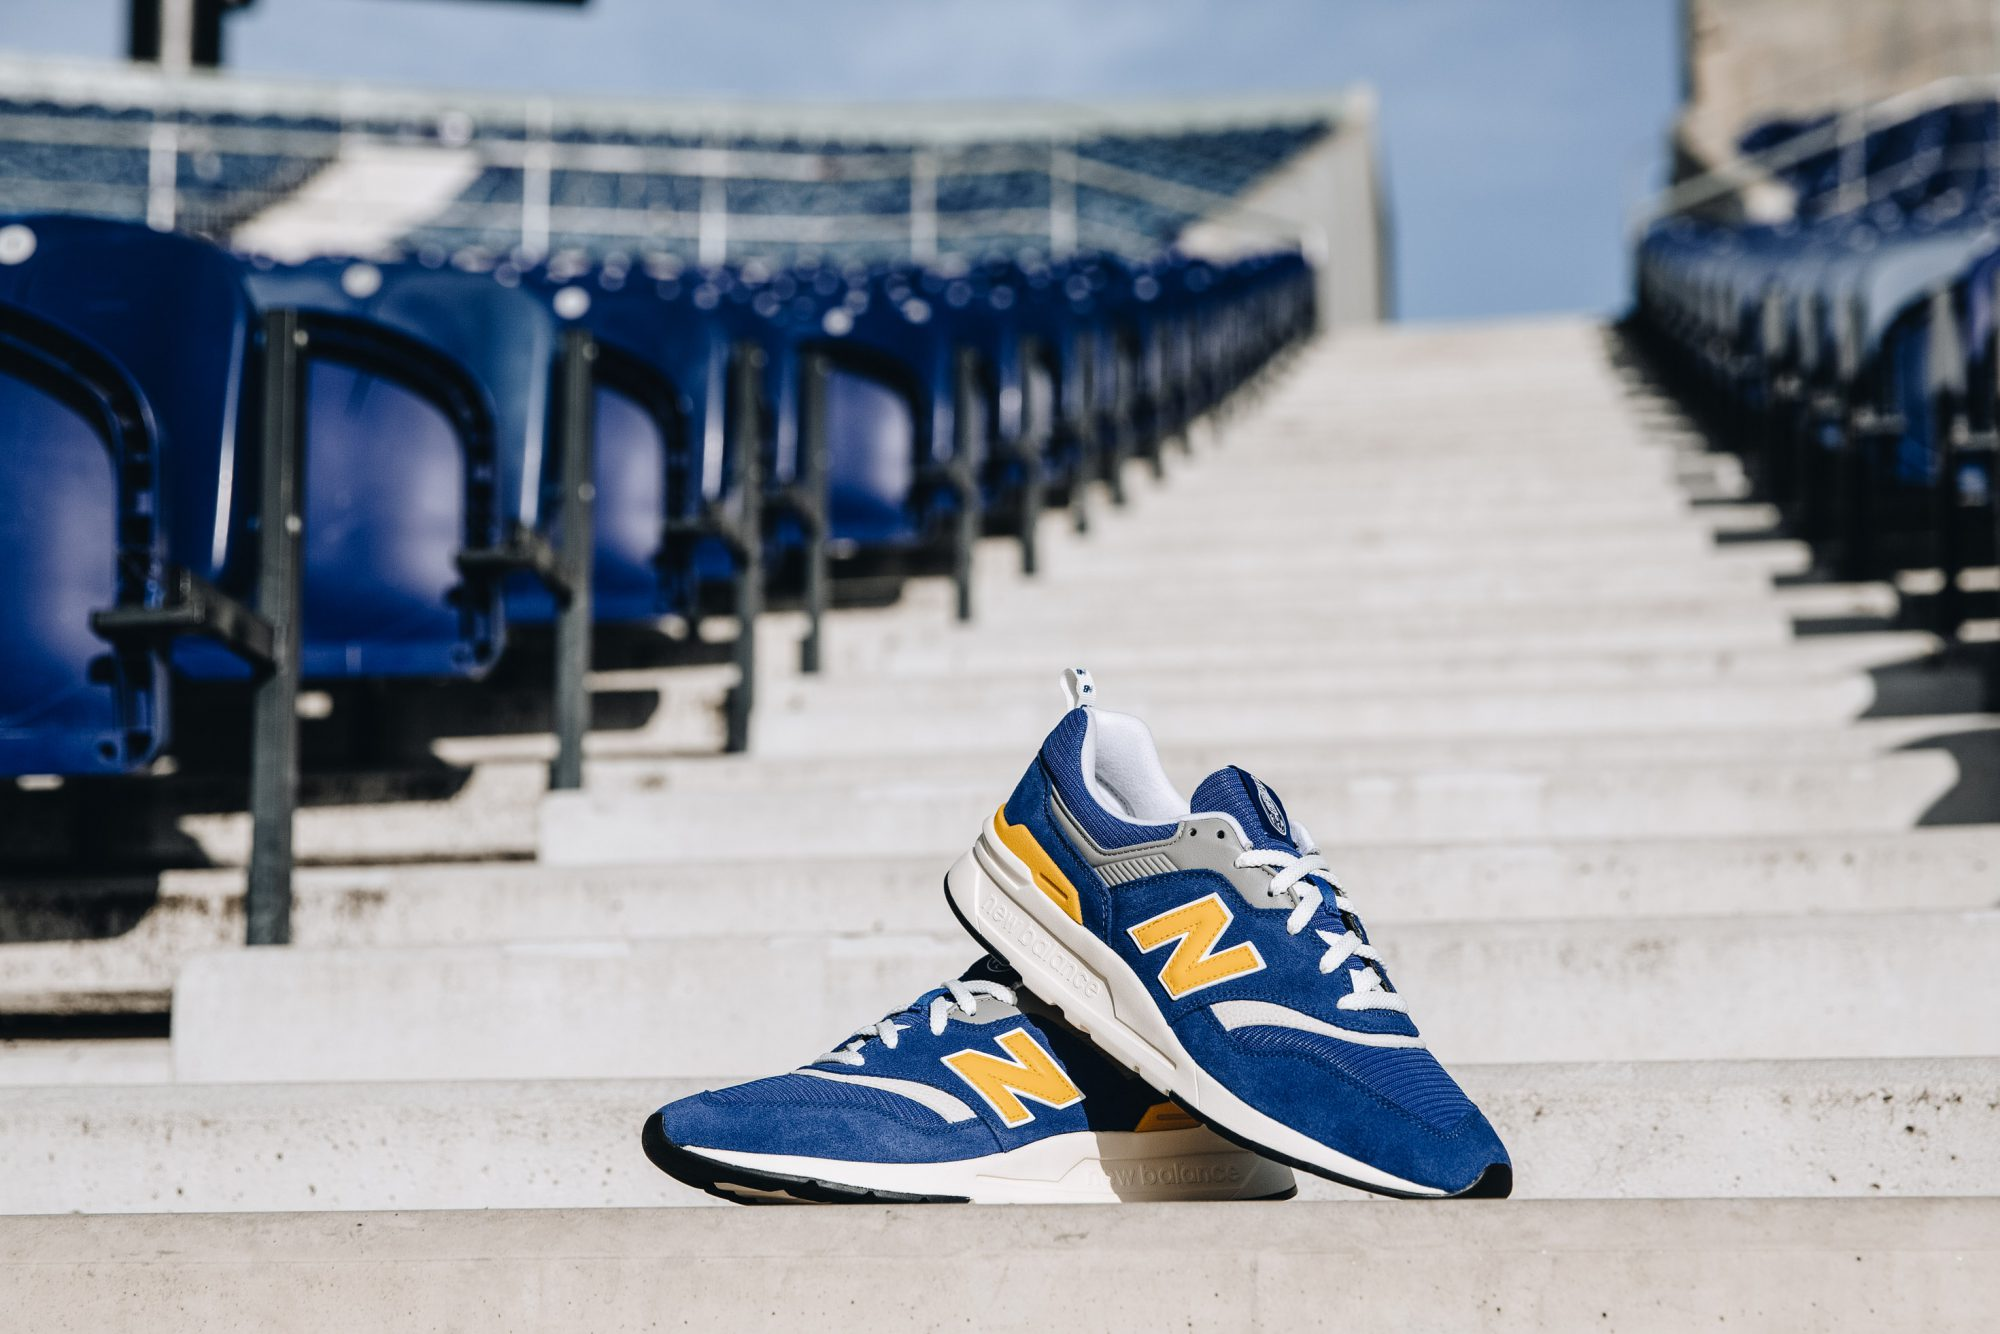 carrera estafador formar  New Balance Release The Special Edition FC Porto 997 Trainer | GAFFER